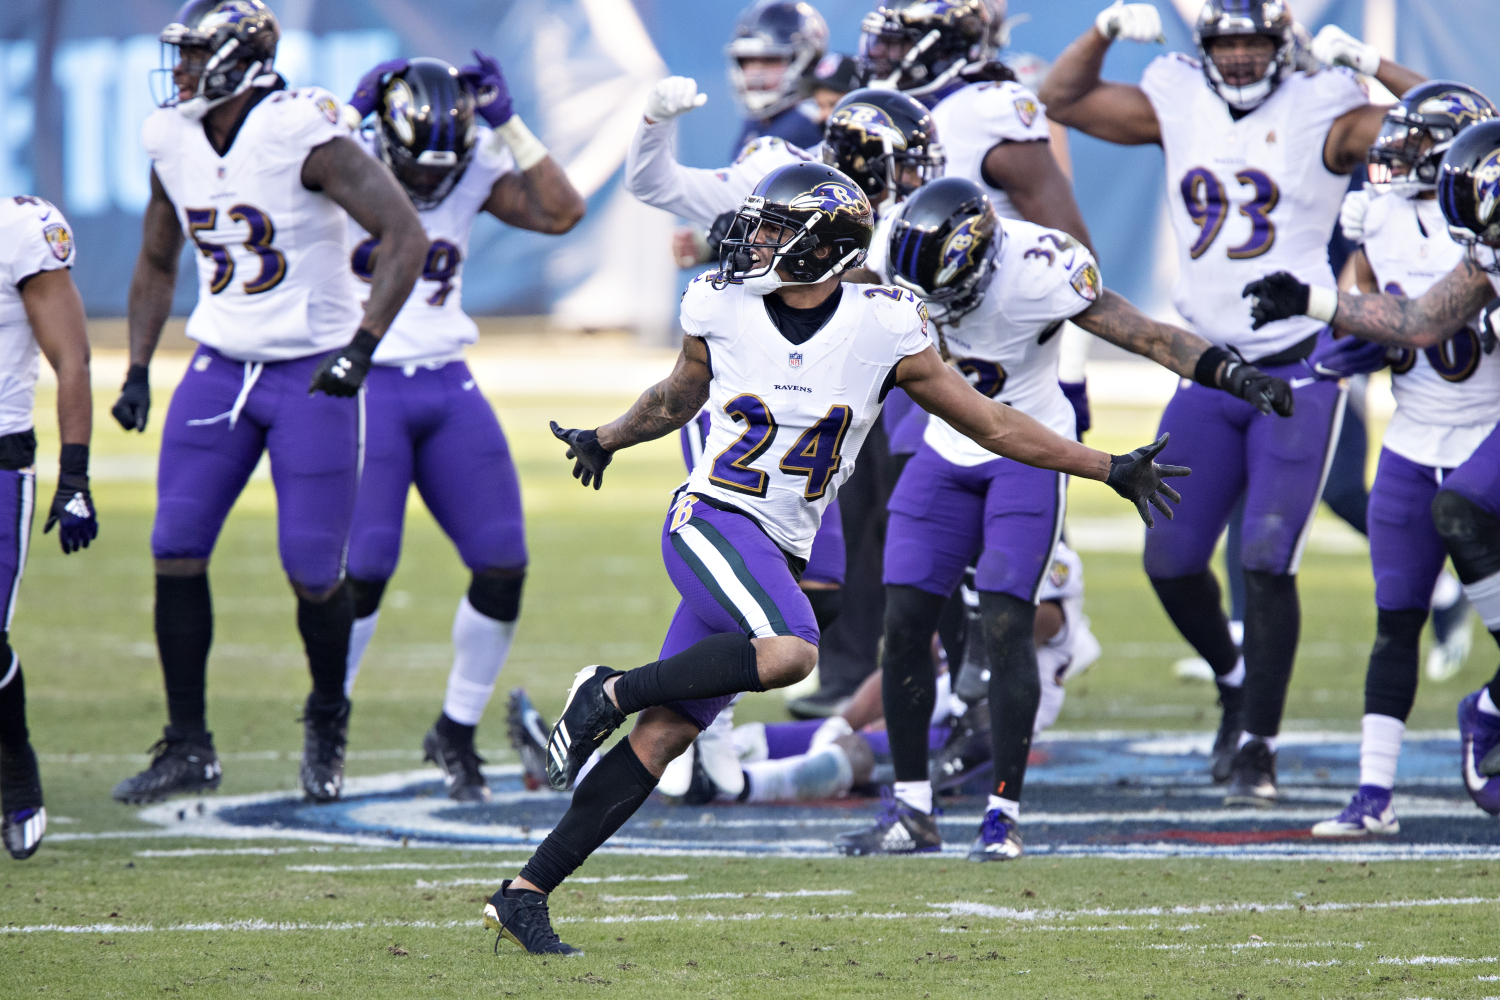 John Harbaugh Insists That Marcus Peters Has a 'Heart of Gold' Even After His Disrespectful Celebration